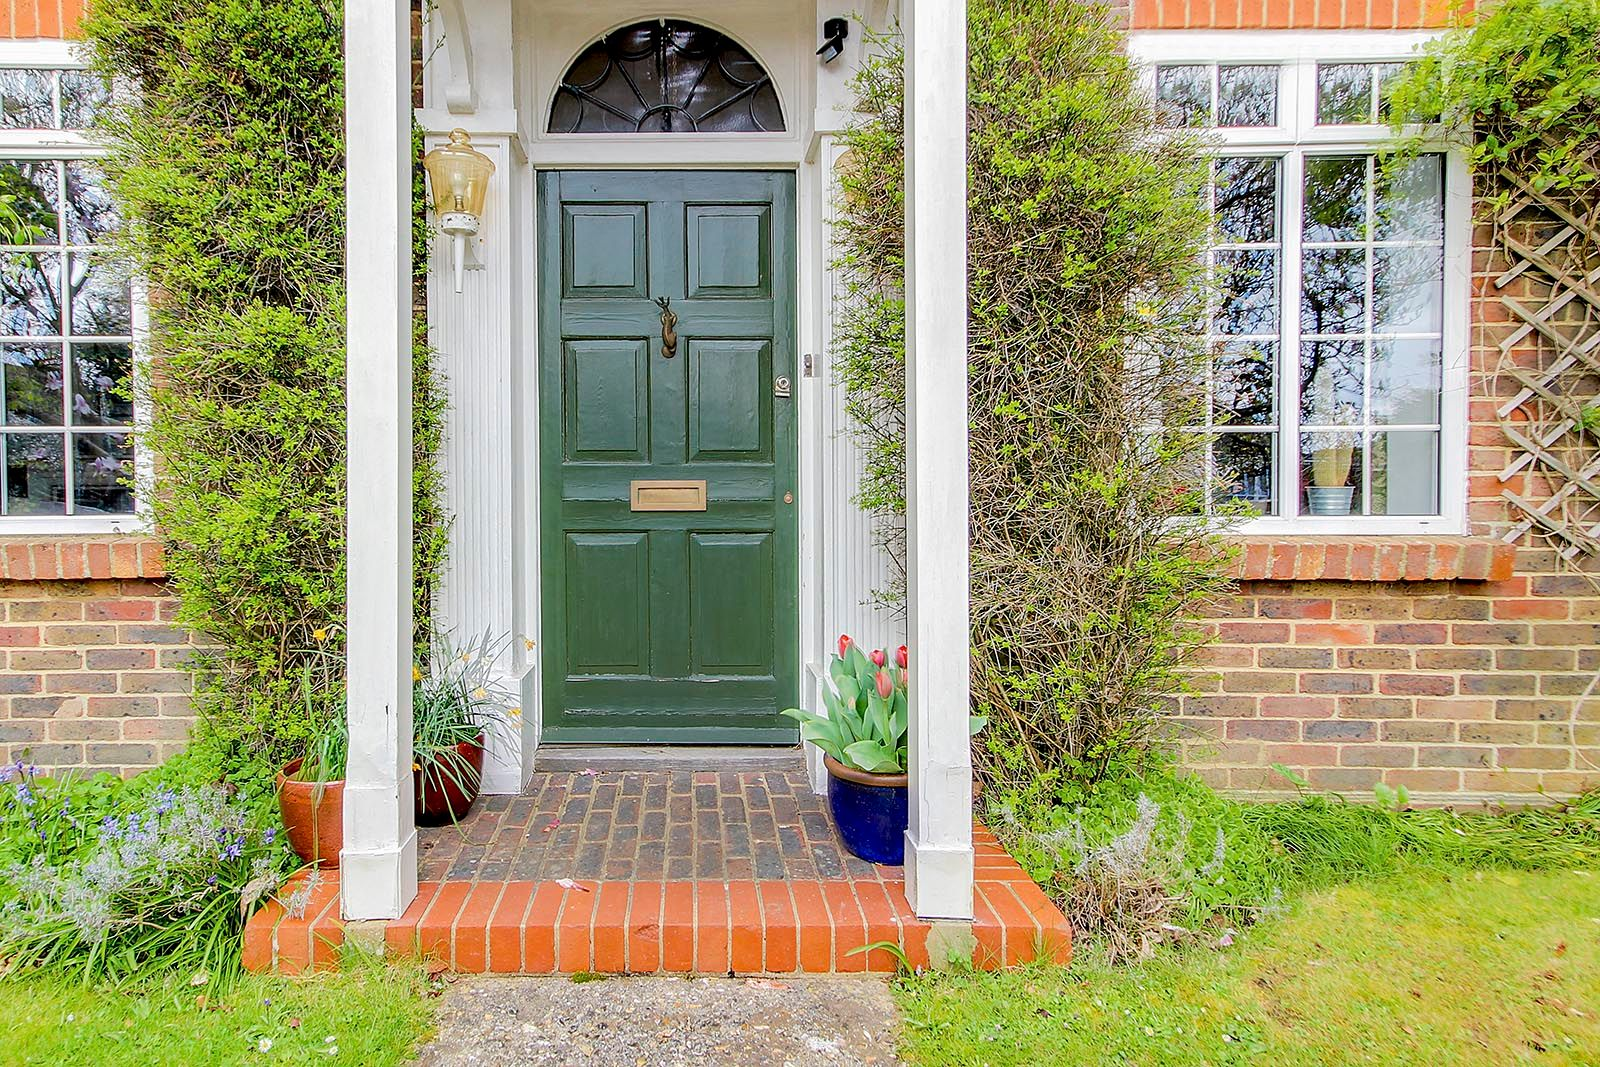 4 bed house for sale in Mill Road (COMP AUG 19) 3